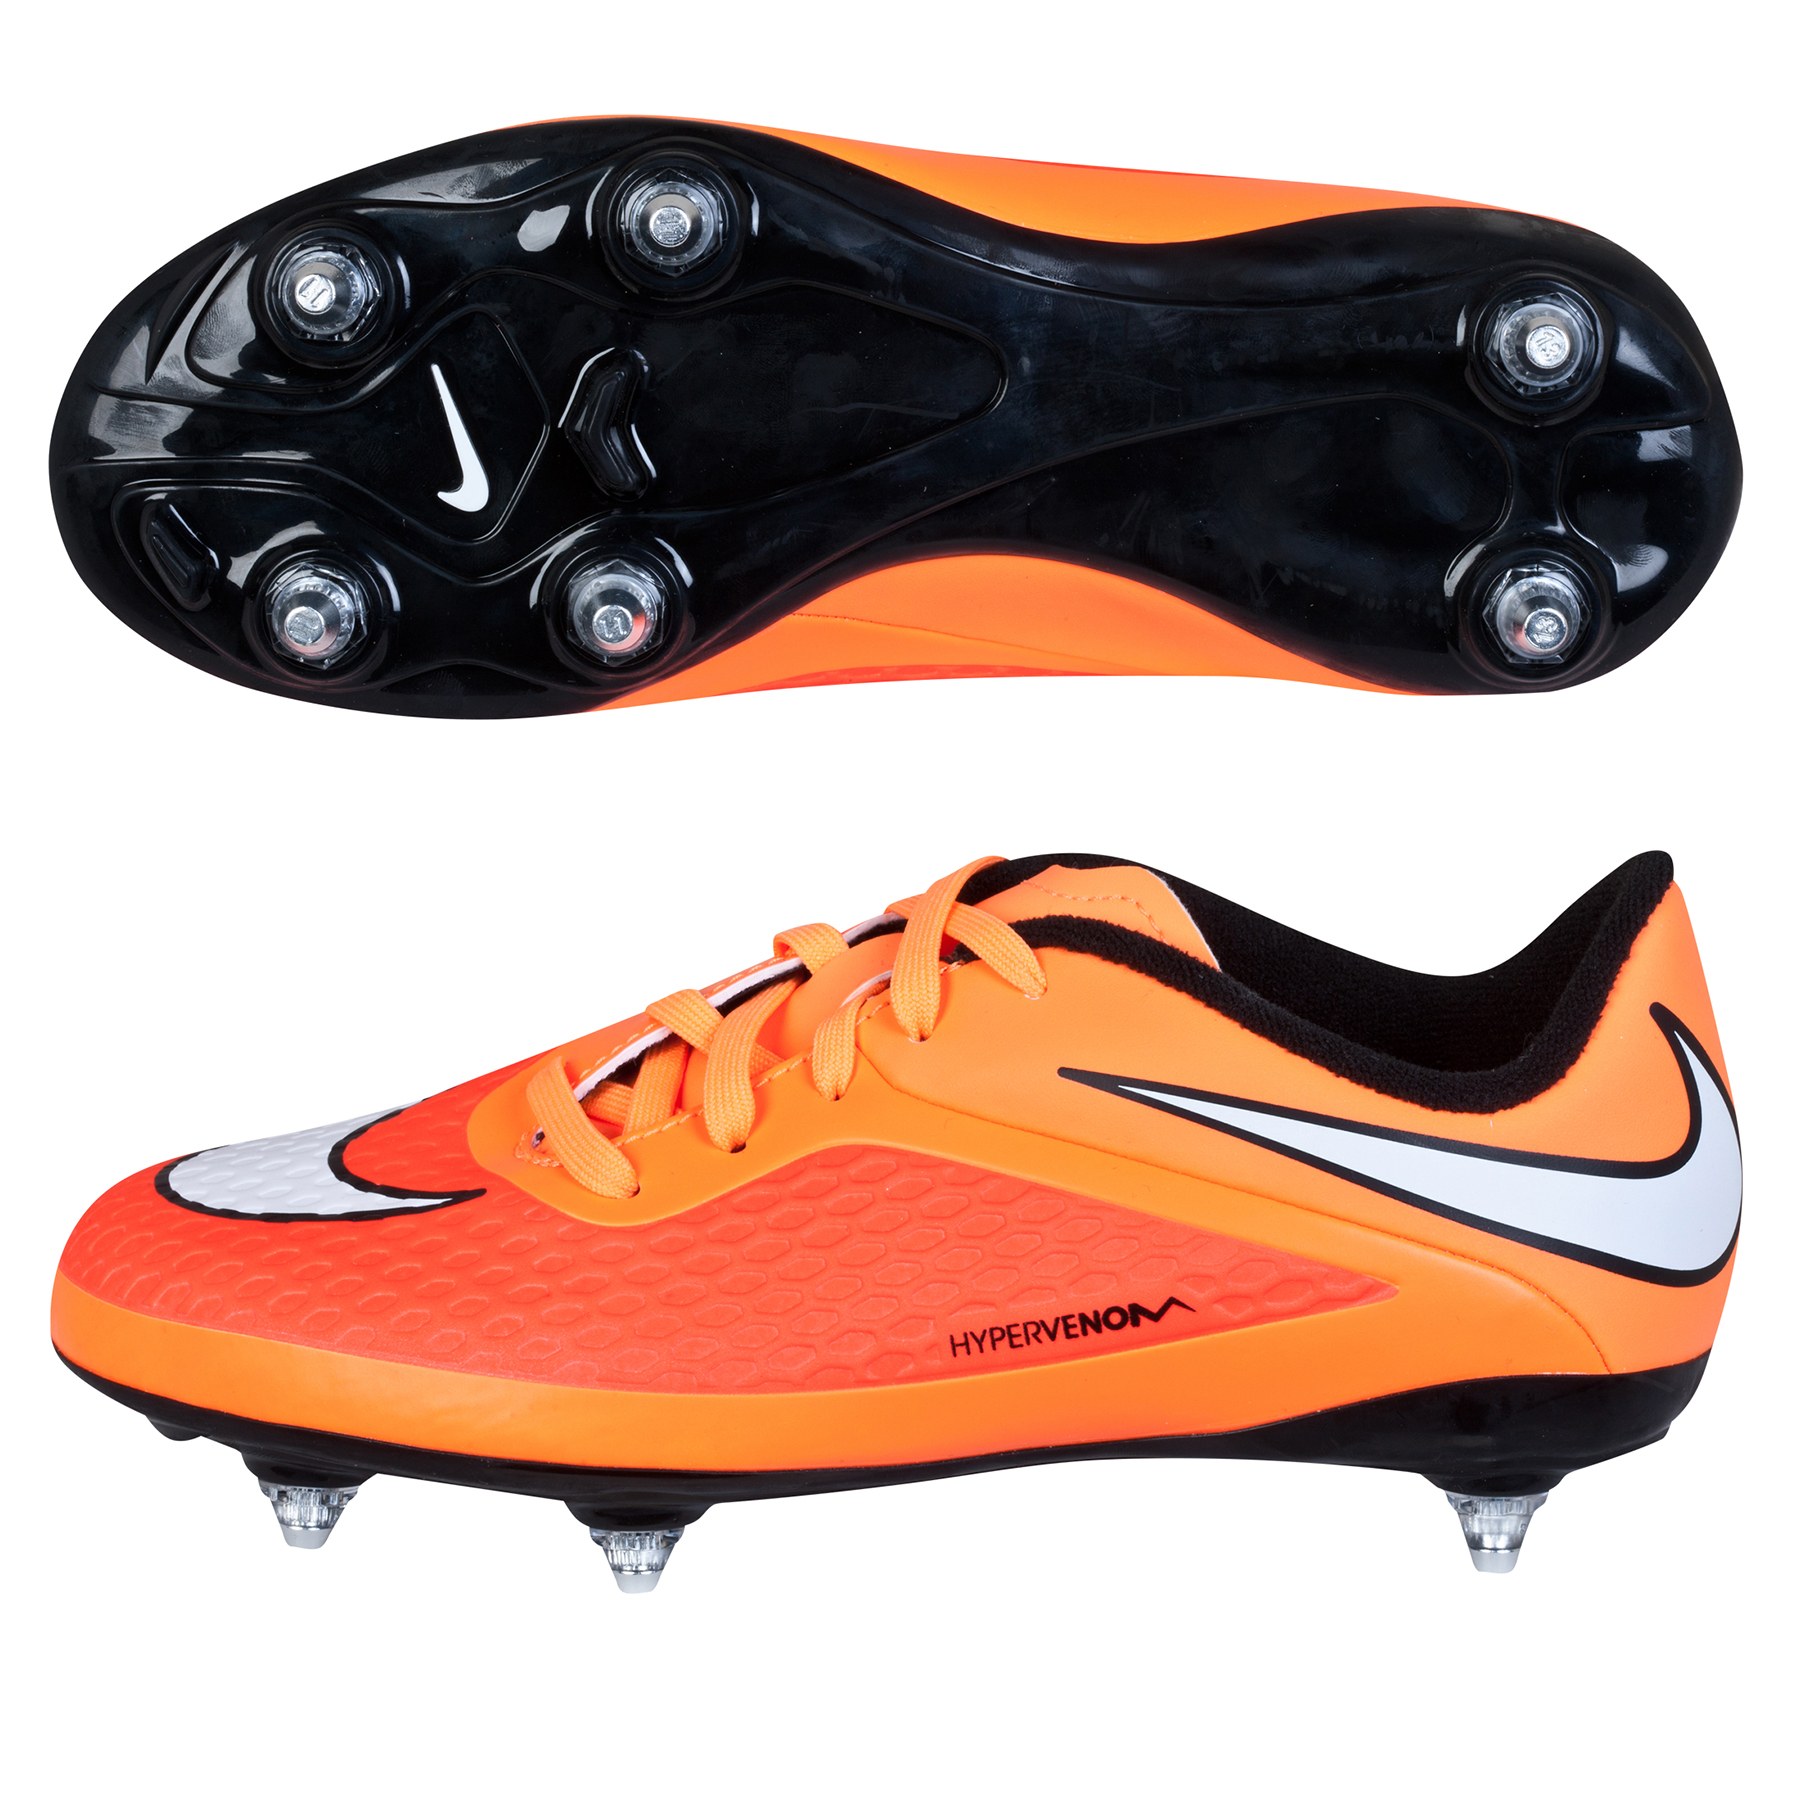 Nike Hypervenom Phelon Soft Ground Football Boots - Kids Orange